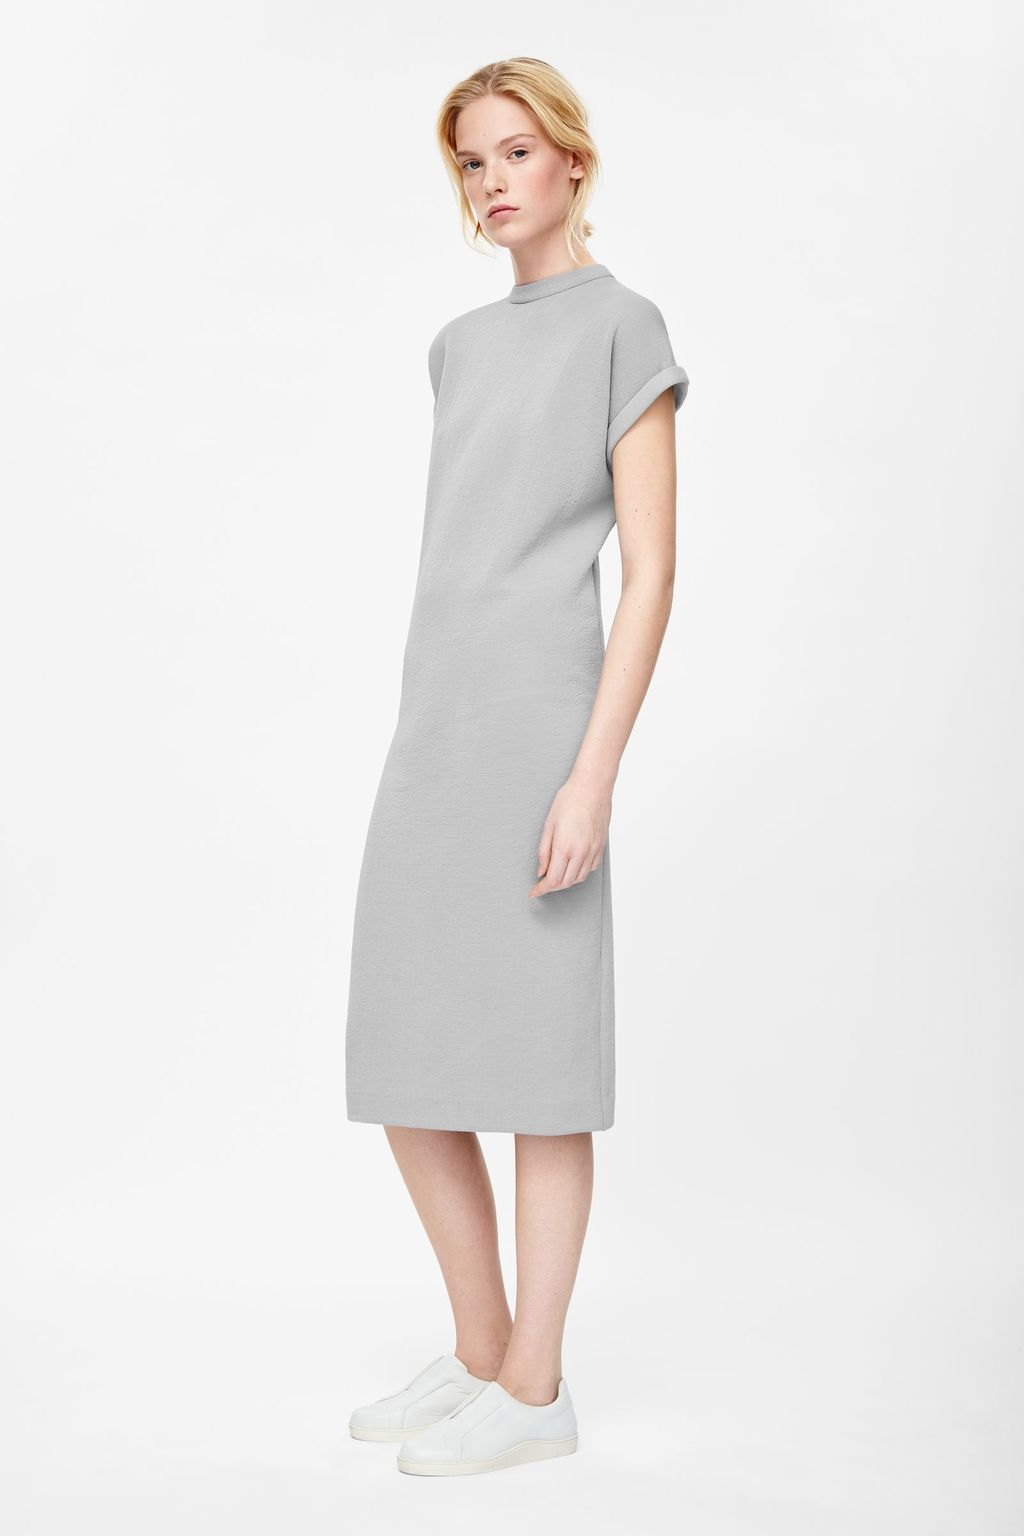 Dress With Rolled Sleeves - style: shift; length: below the knee; pattern: plain; neckline: high neck; predominant colour: light grey; occasions: casual, creative work; fit: straight cut; sleeve length: short sleeve; sleeve style: standard; pattern type: fabric; texture group: other - light to midweight; season: s/s 2015; wardrobe: basic